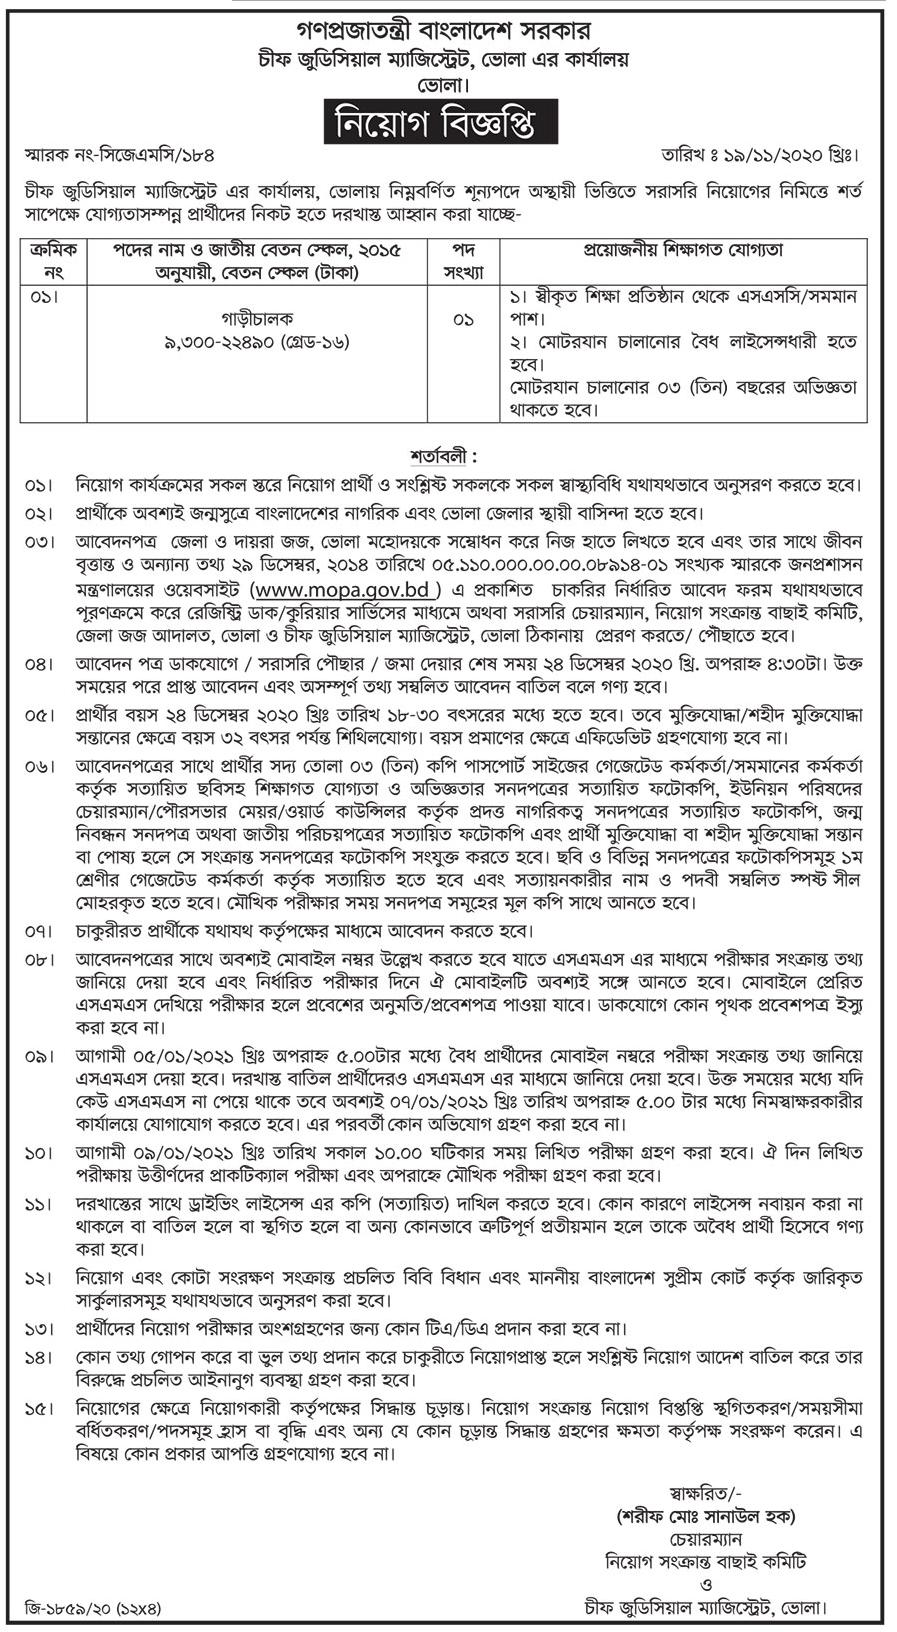 Bhola Chief Judicial Magistrate Office Job Circular 2020